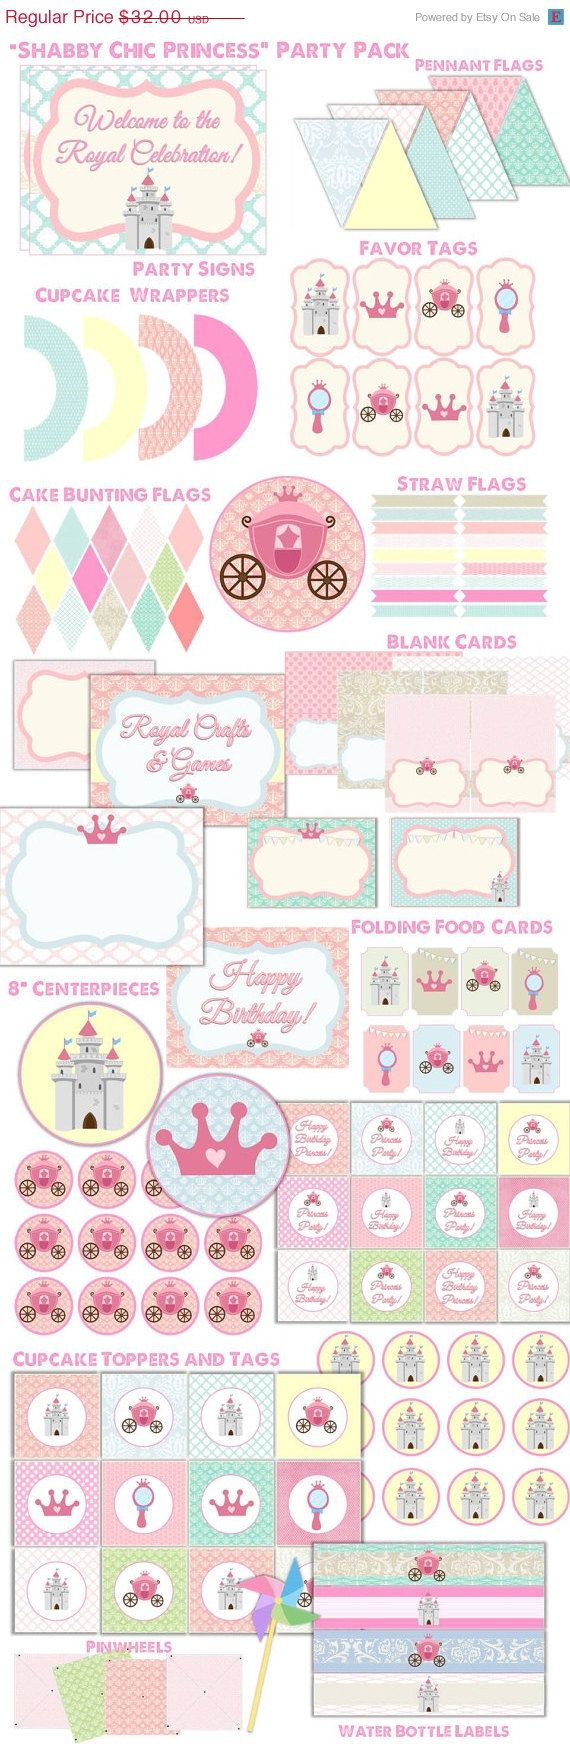 Princess Party, 140 Items, Large Party Pack, Instant Download,  Shabby Chic Princess, Cinderella Birthday Day Supplies and Decor on Etsy, $12.80